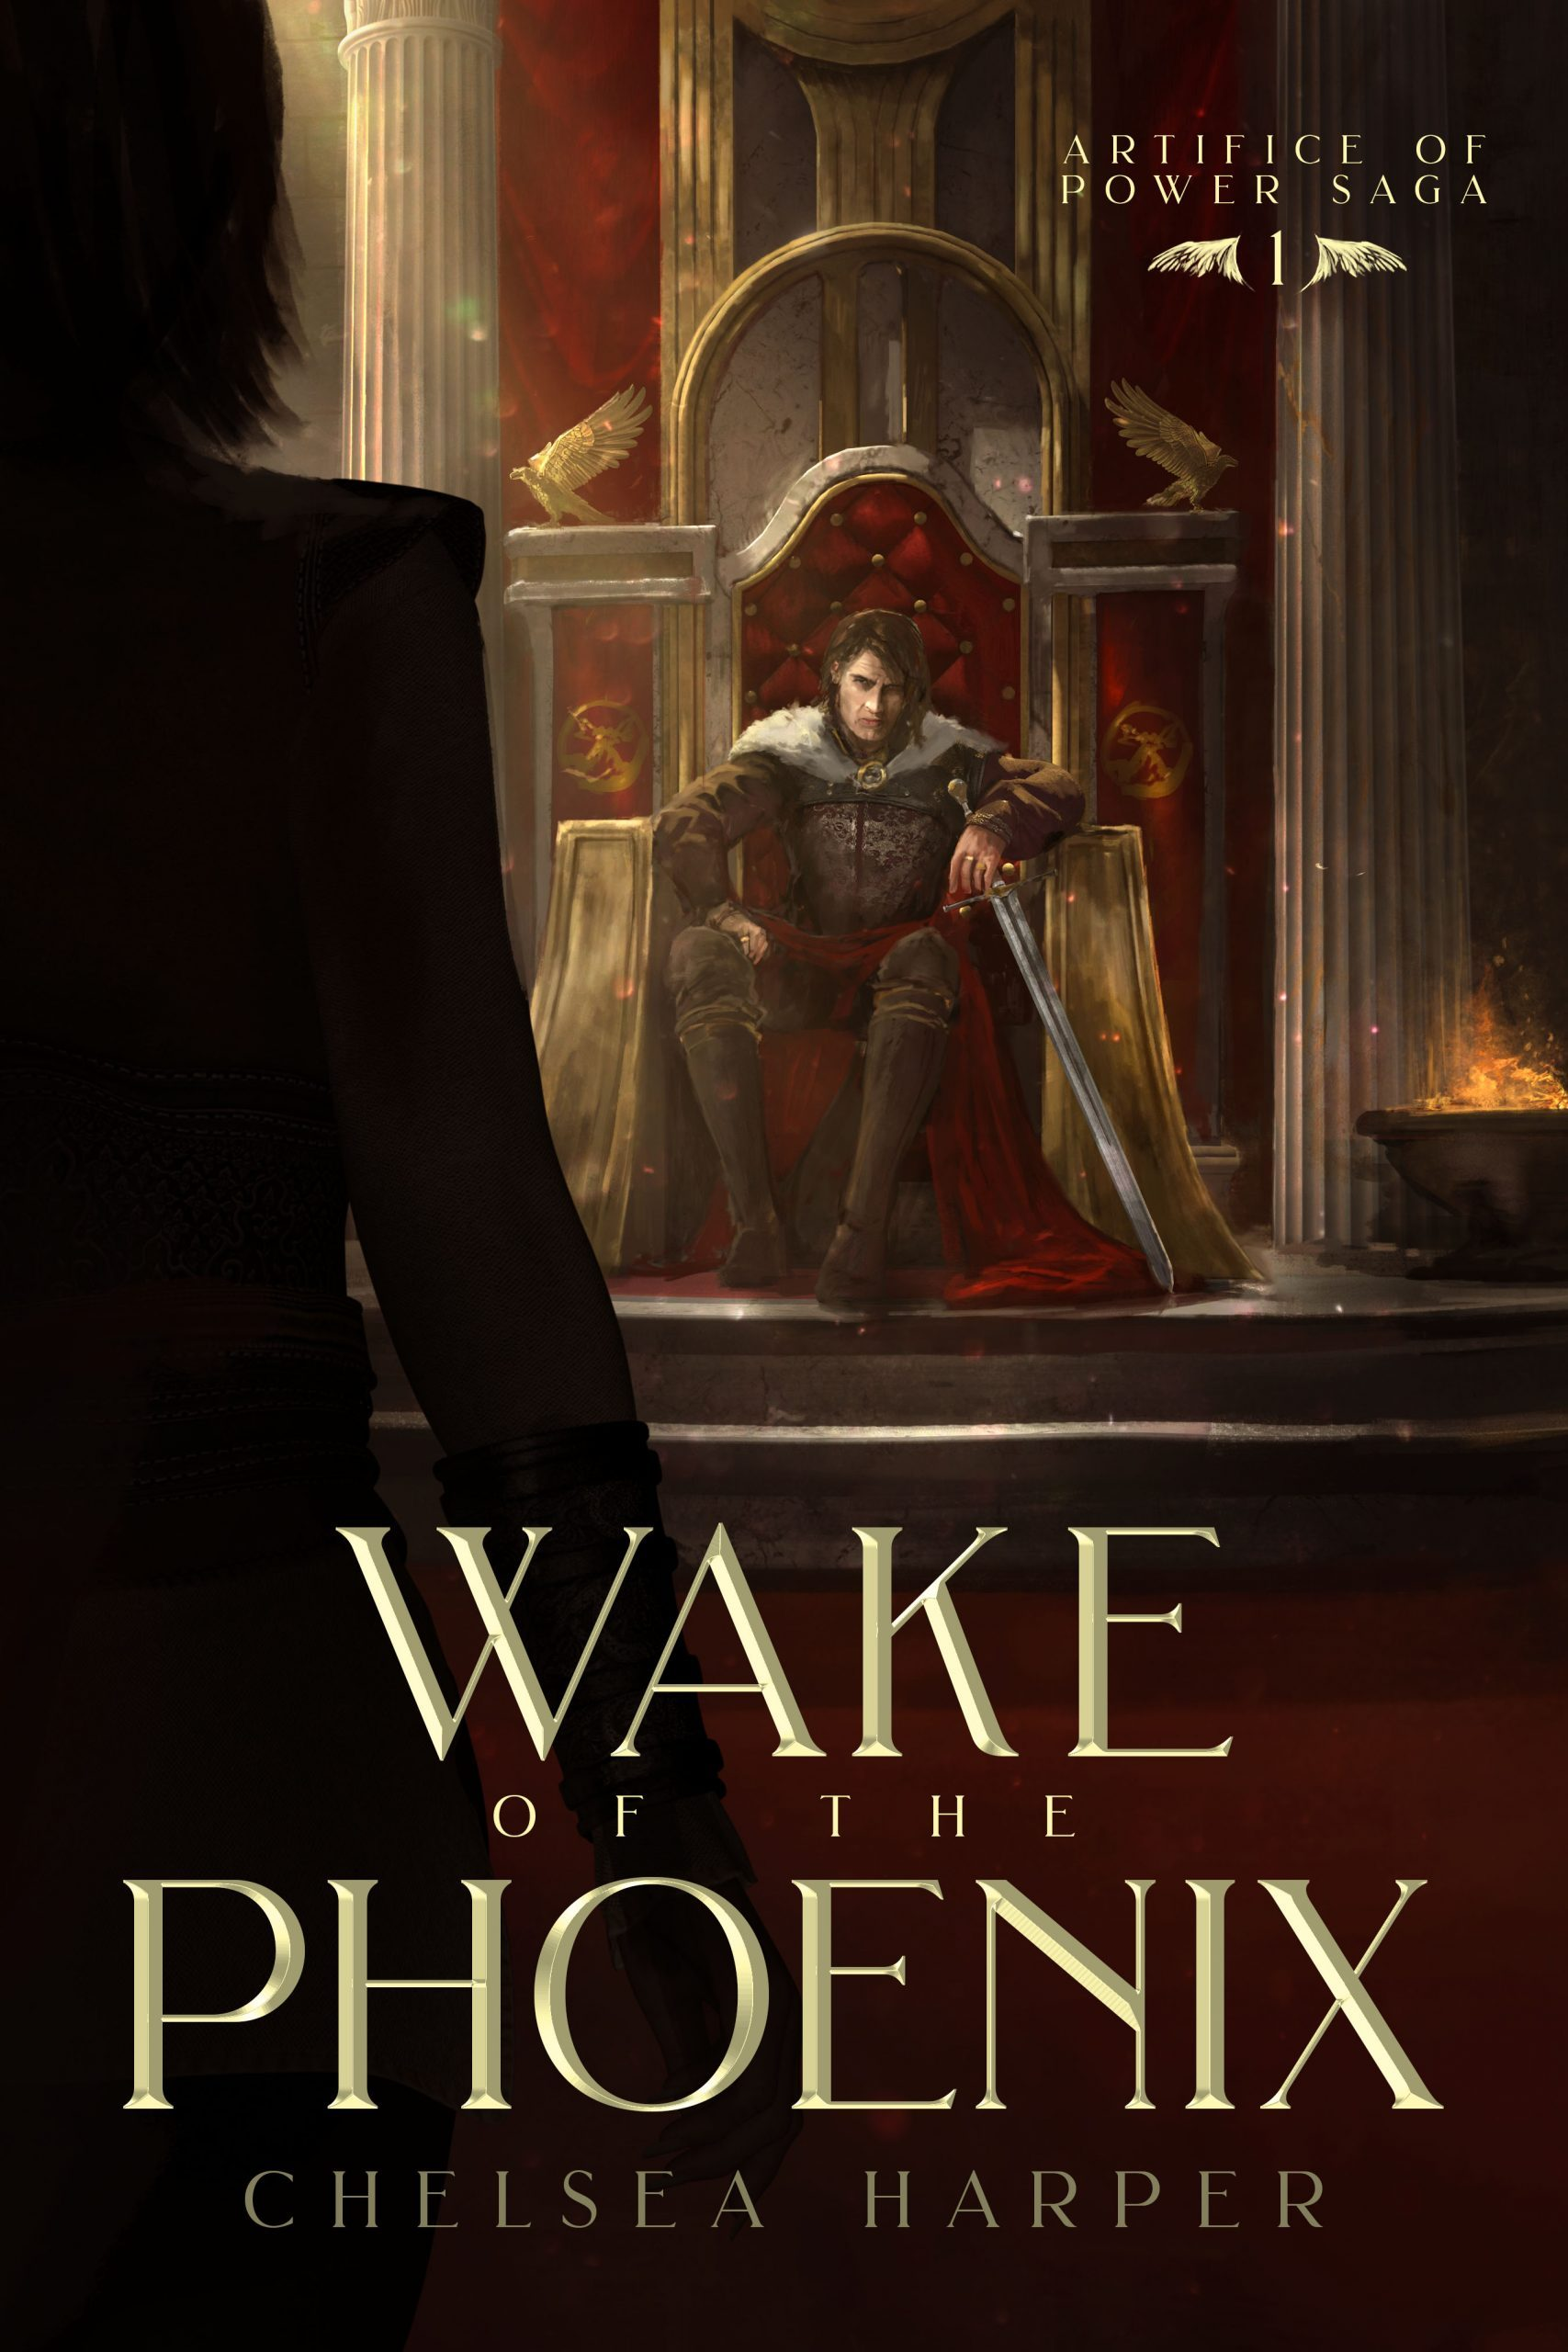 Wake Of The Phoenix By Chelsea Harper Release Date? 2021 Debut Releases